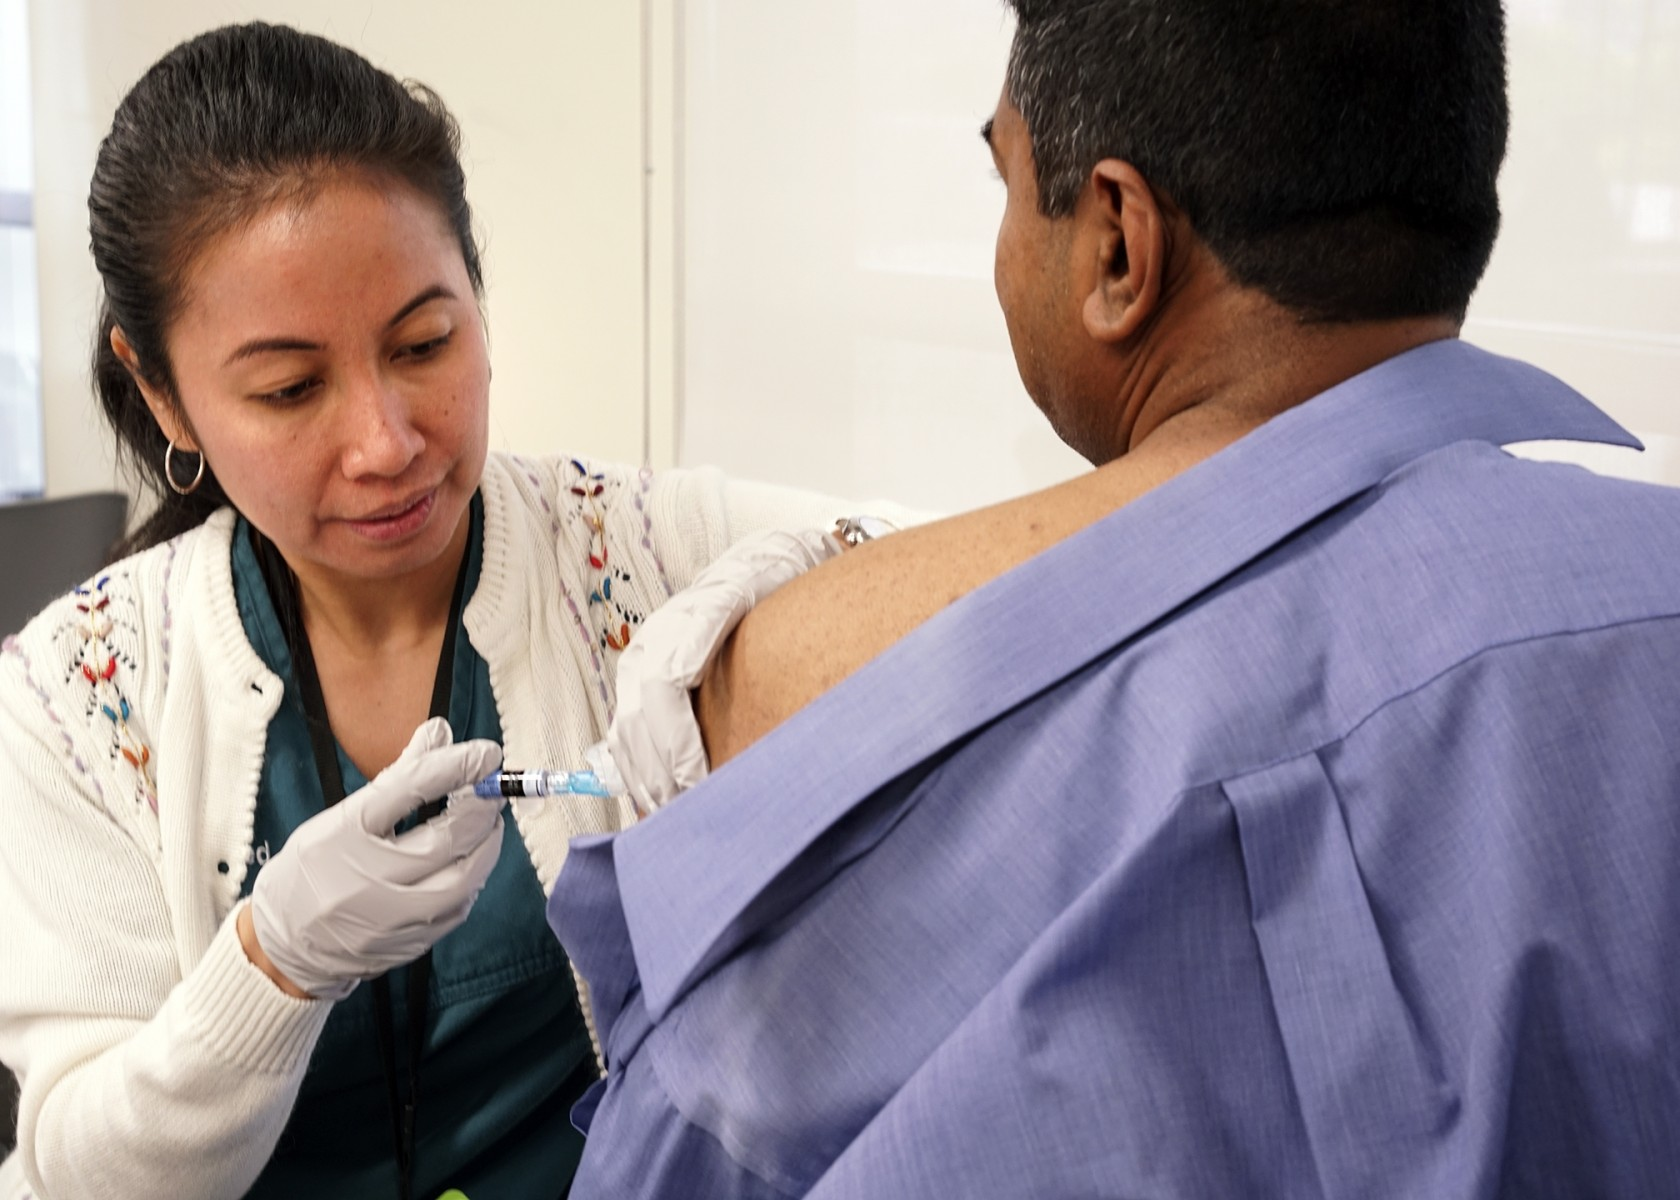 A nurse gives a patient a flu shot. Photo by Cedars-Sinai.